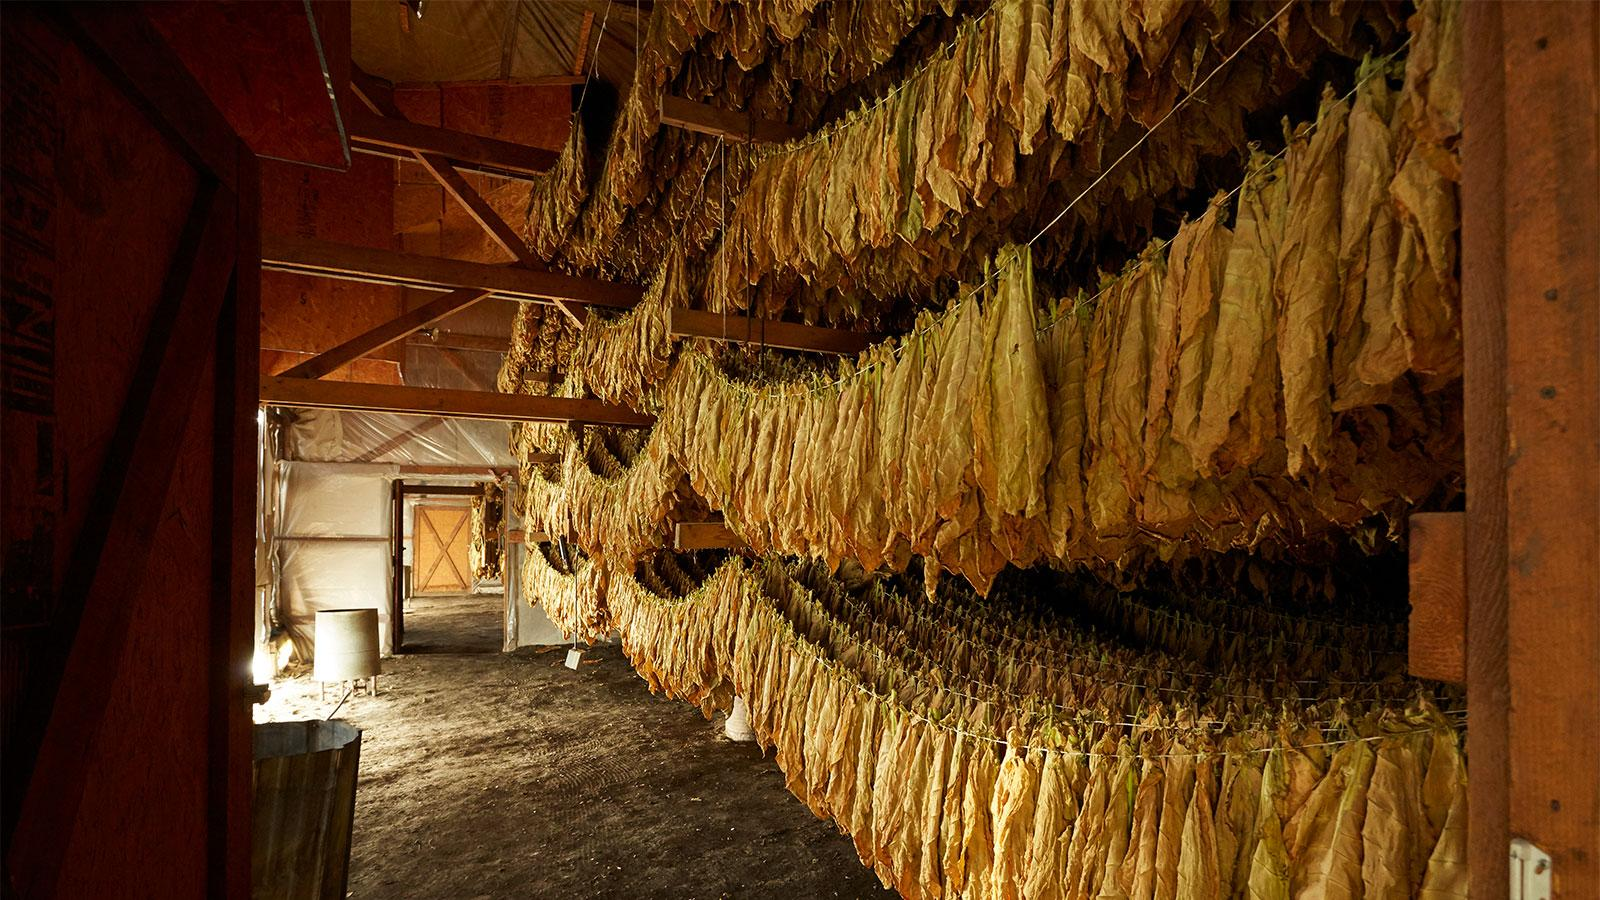 Shade leaves are strung together in small tied groupings or hands of tobacco and festooned across the rafters of a curing barn.